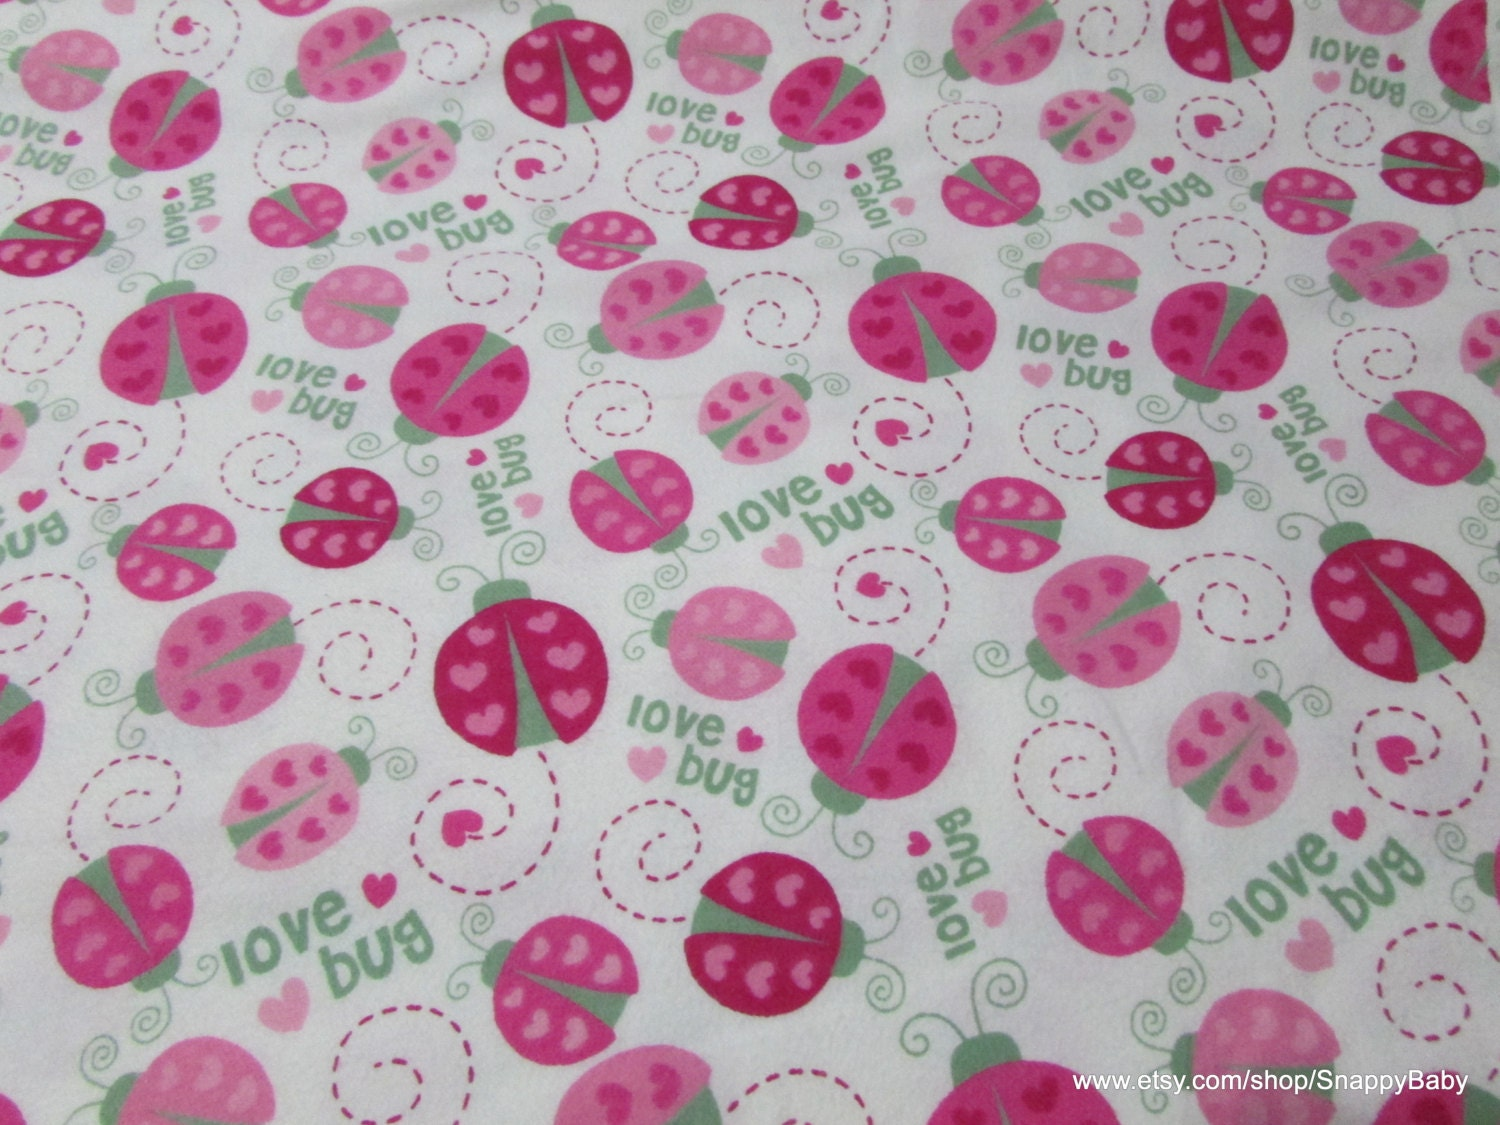 Flannel fabric love bug ladybugs by the yard 100 for Flannel fabric